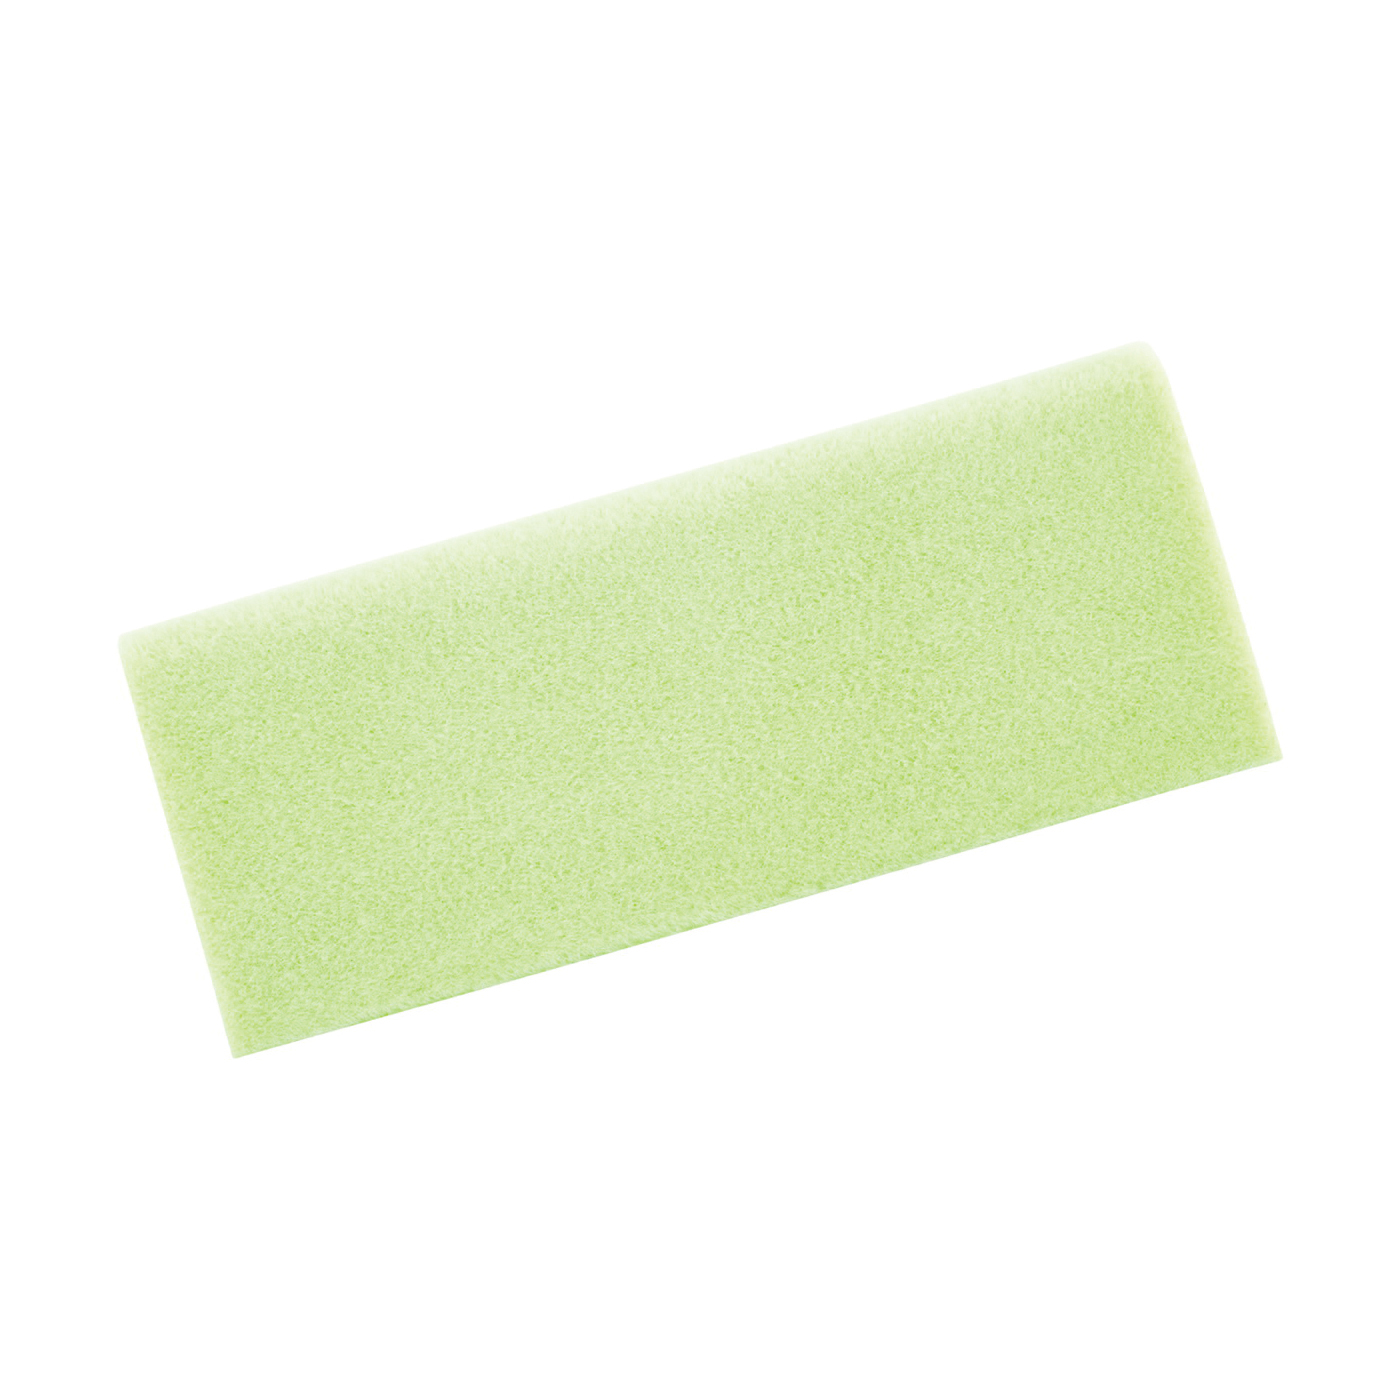 Picture of SHUR-LINE 630C Pad Painter Refill, 3-3/4 in L Pad, 9 in W Pad, Plastic Pad, Green